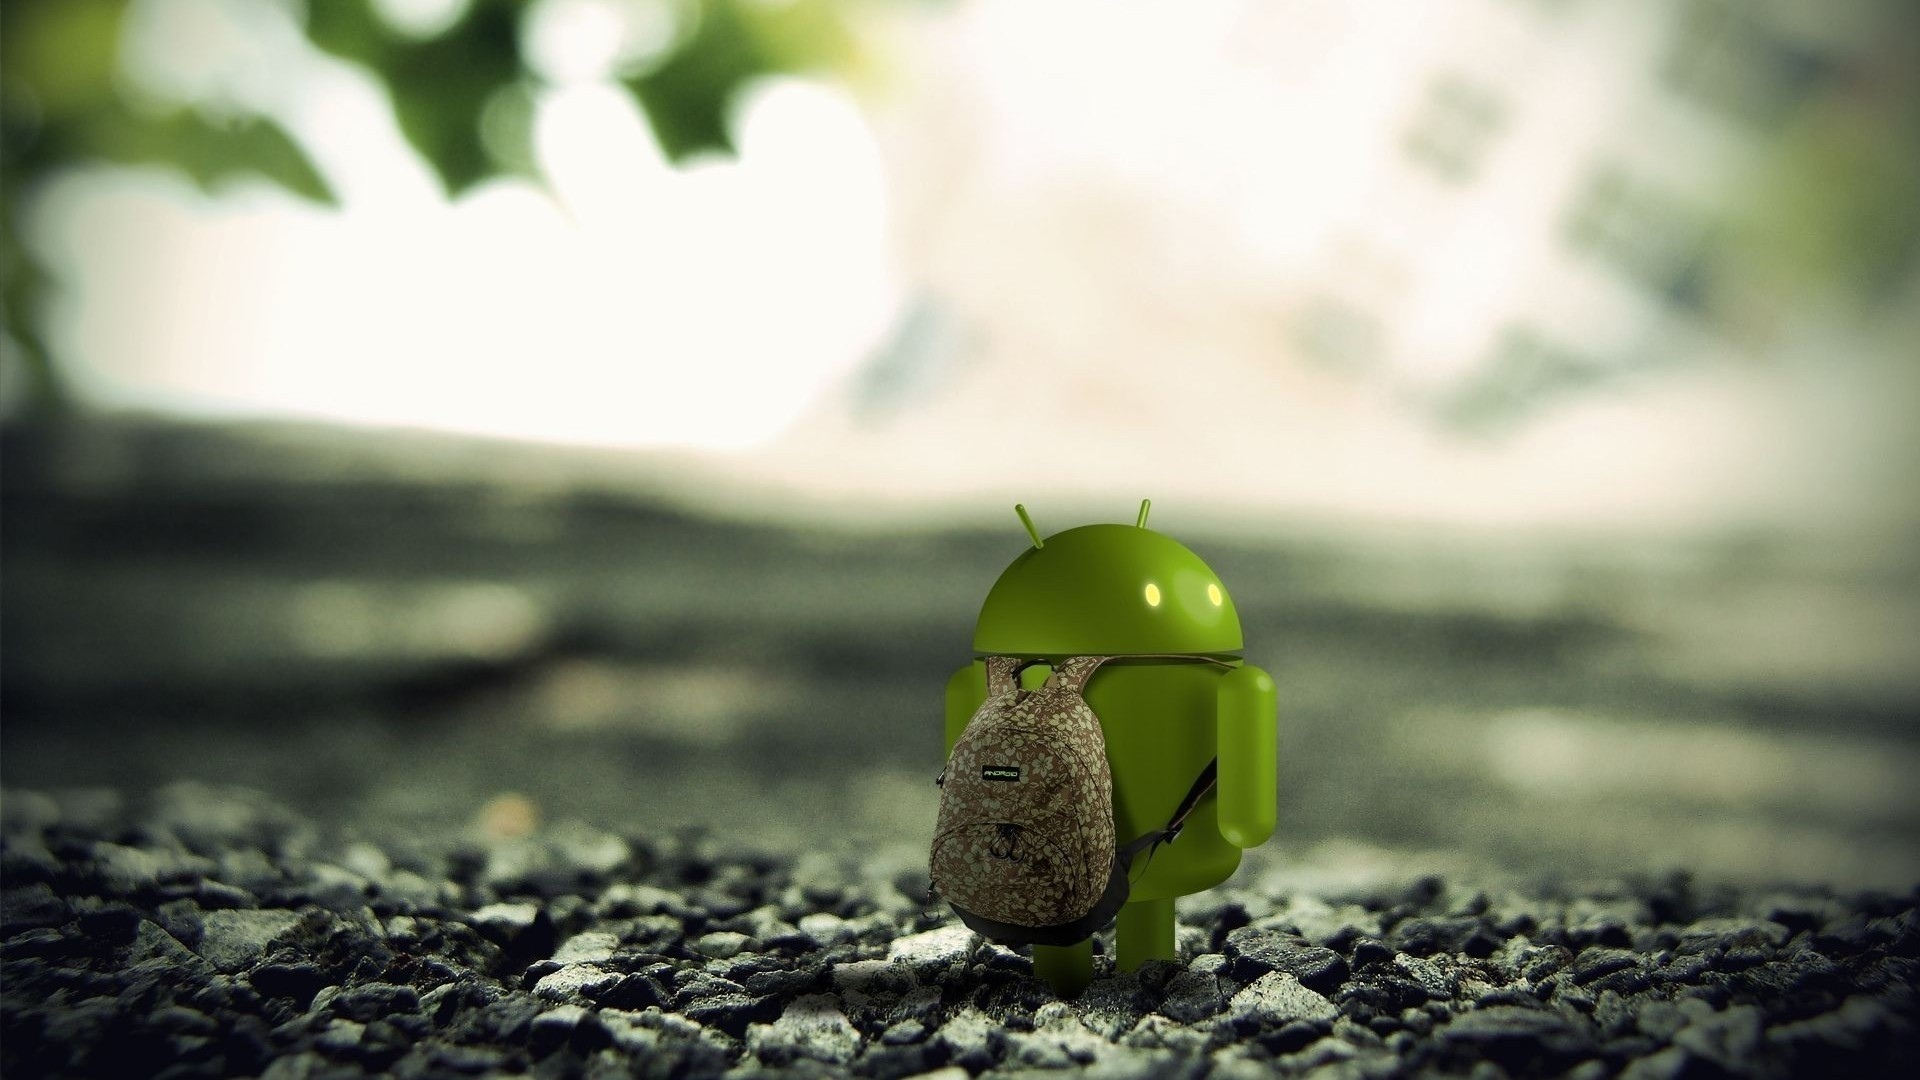 Android Alone 3D Wallppaper HD Widescreen For PC Dekstop